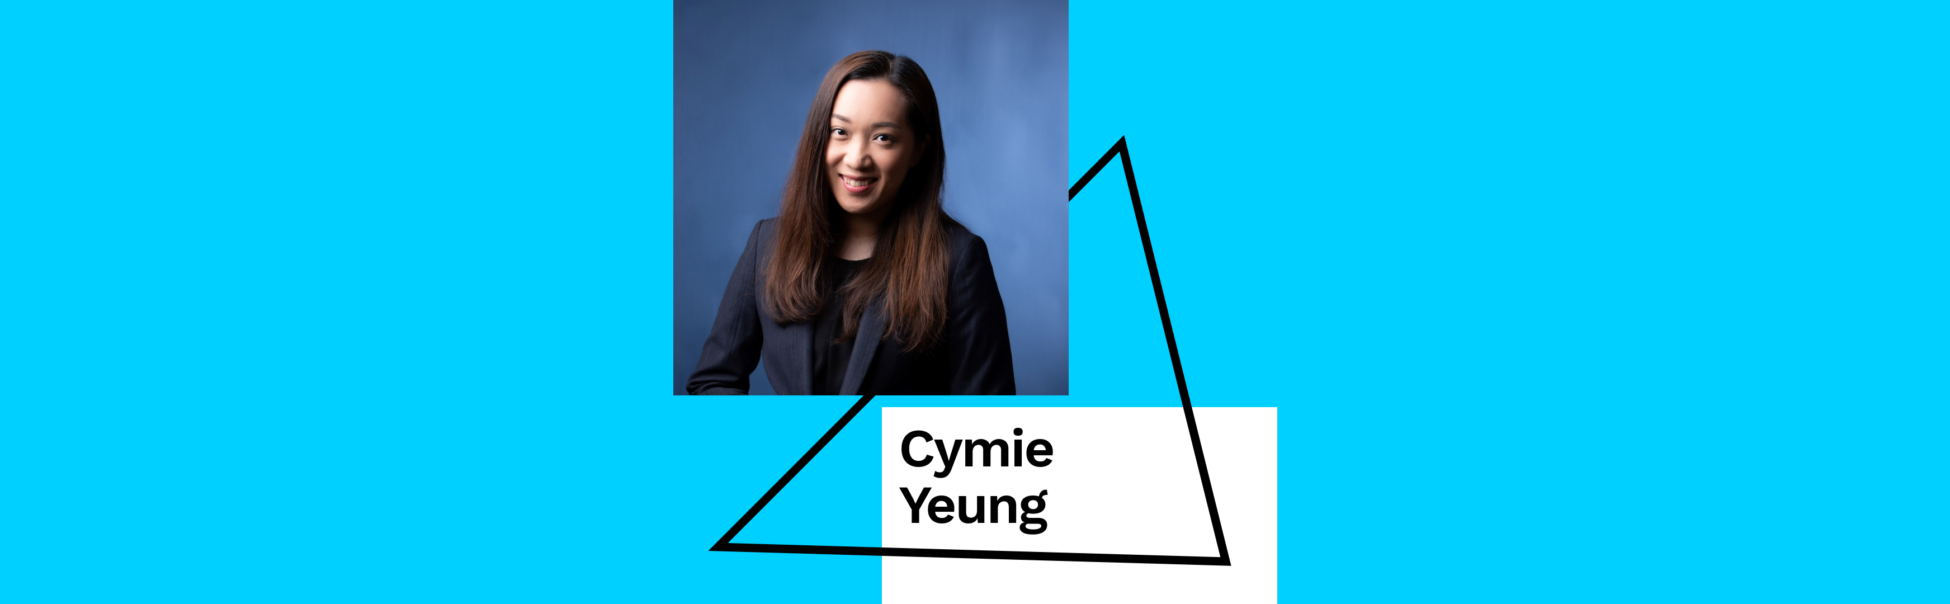 Cymie Yeung